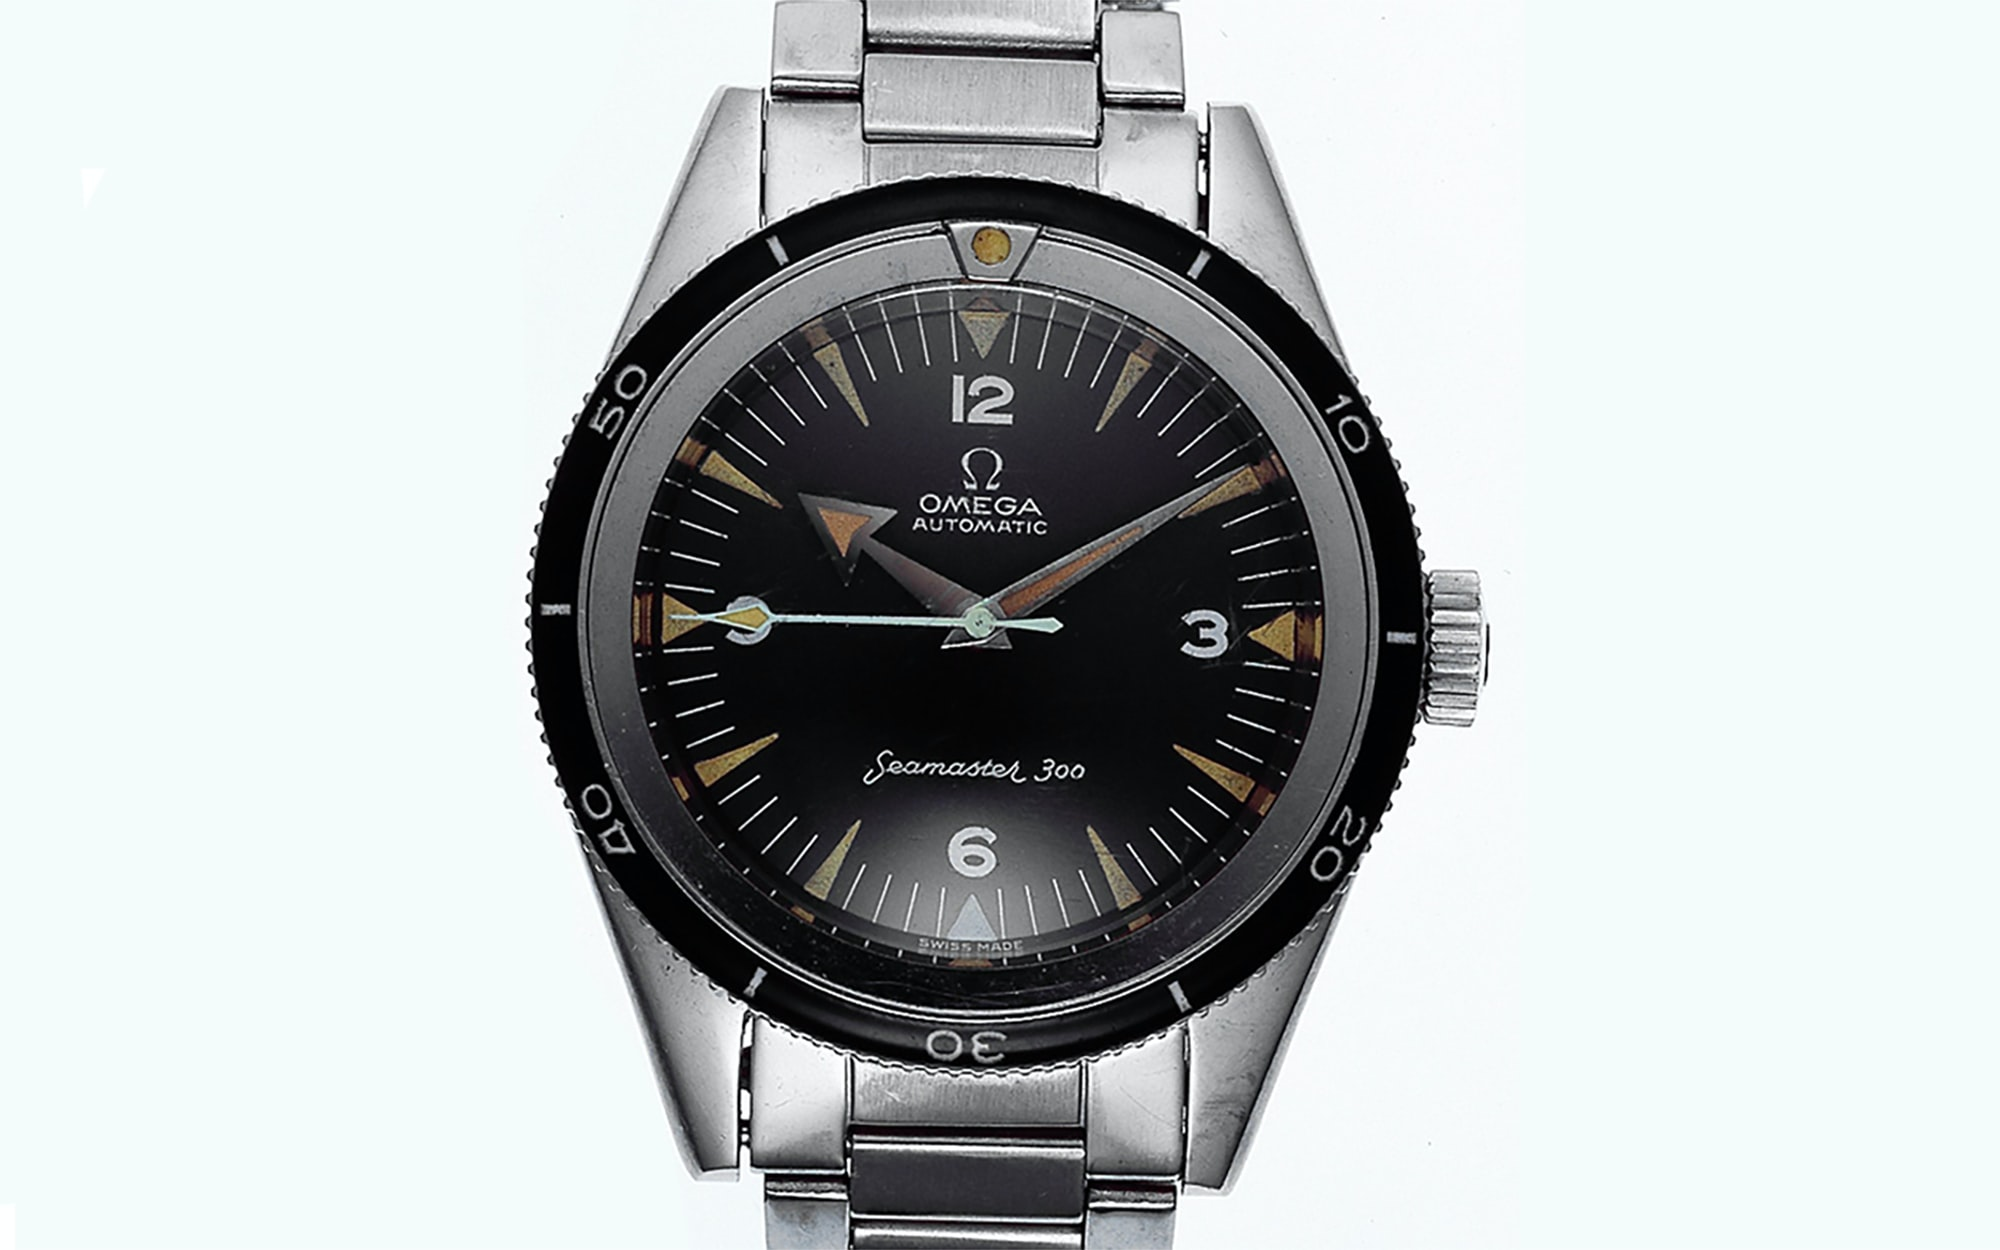 Auction Report: A Military Seamaster 300 That Served Its ...